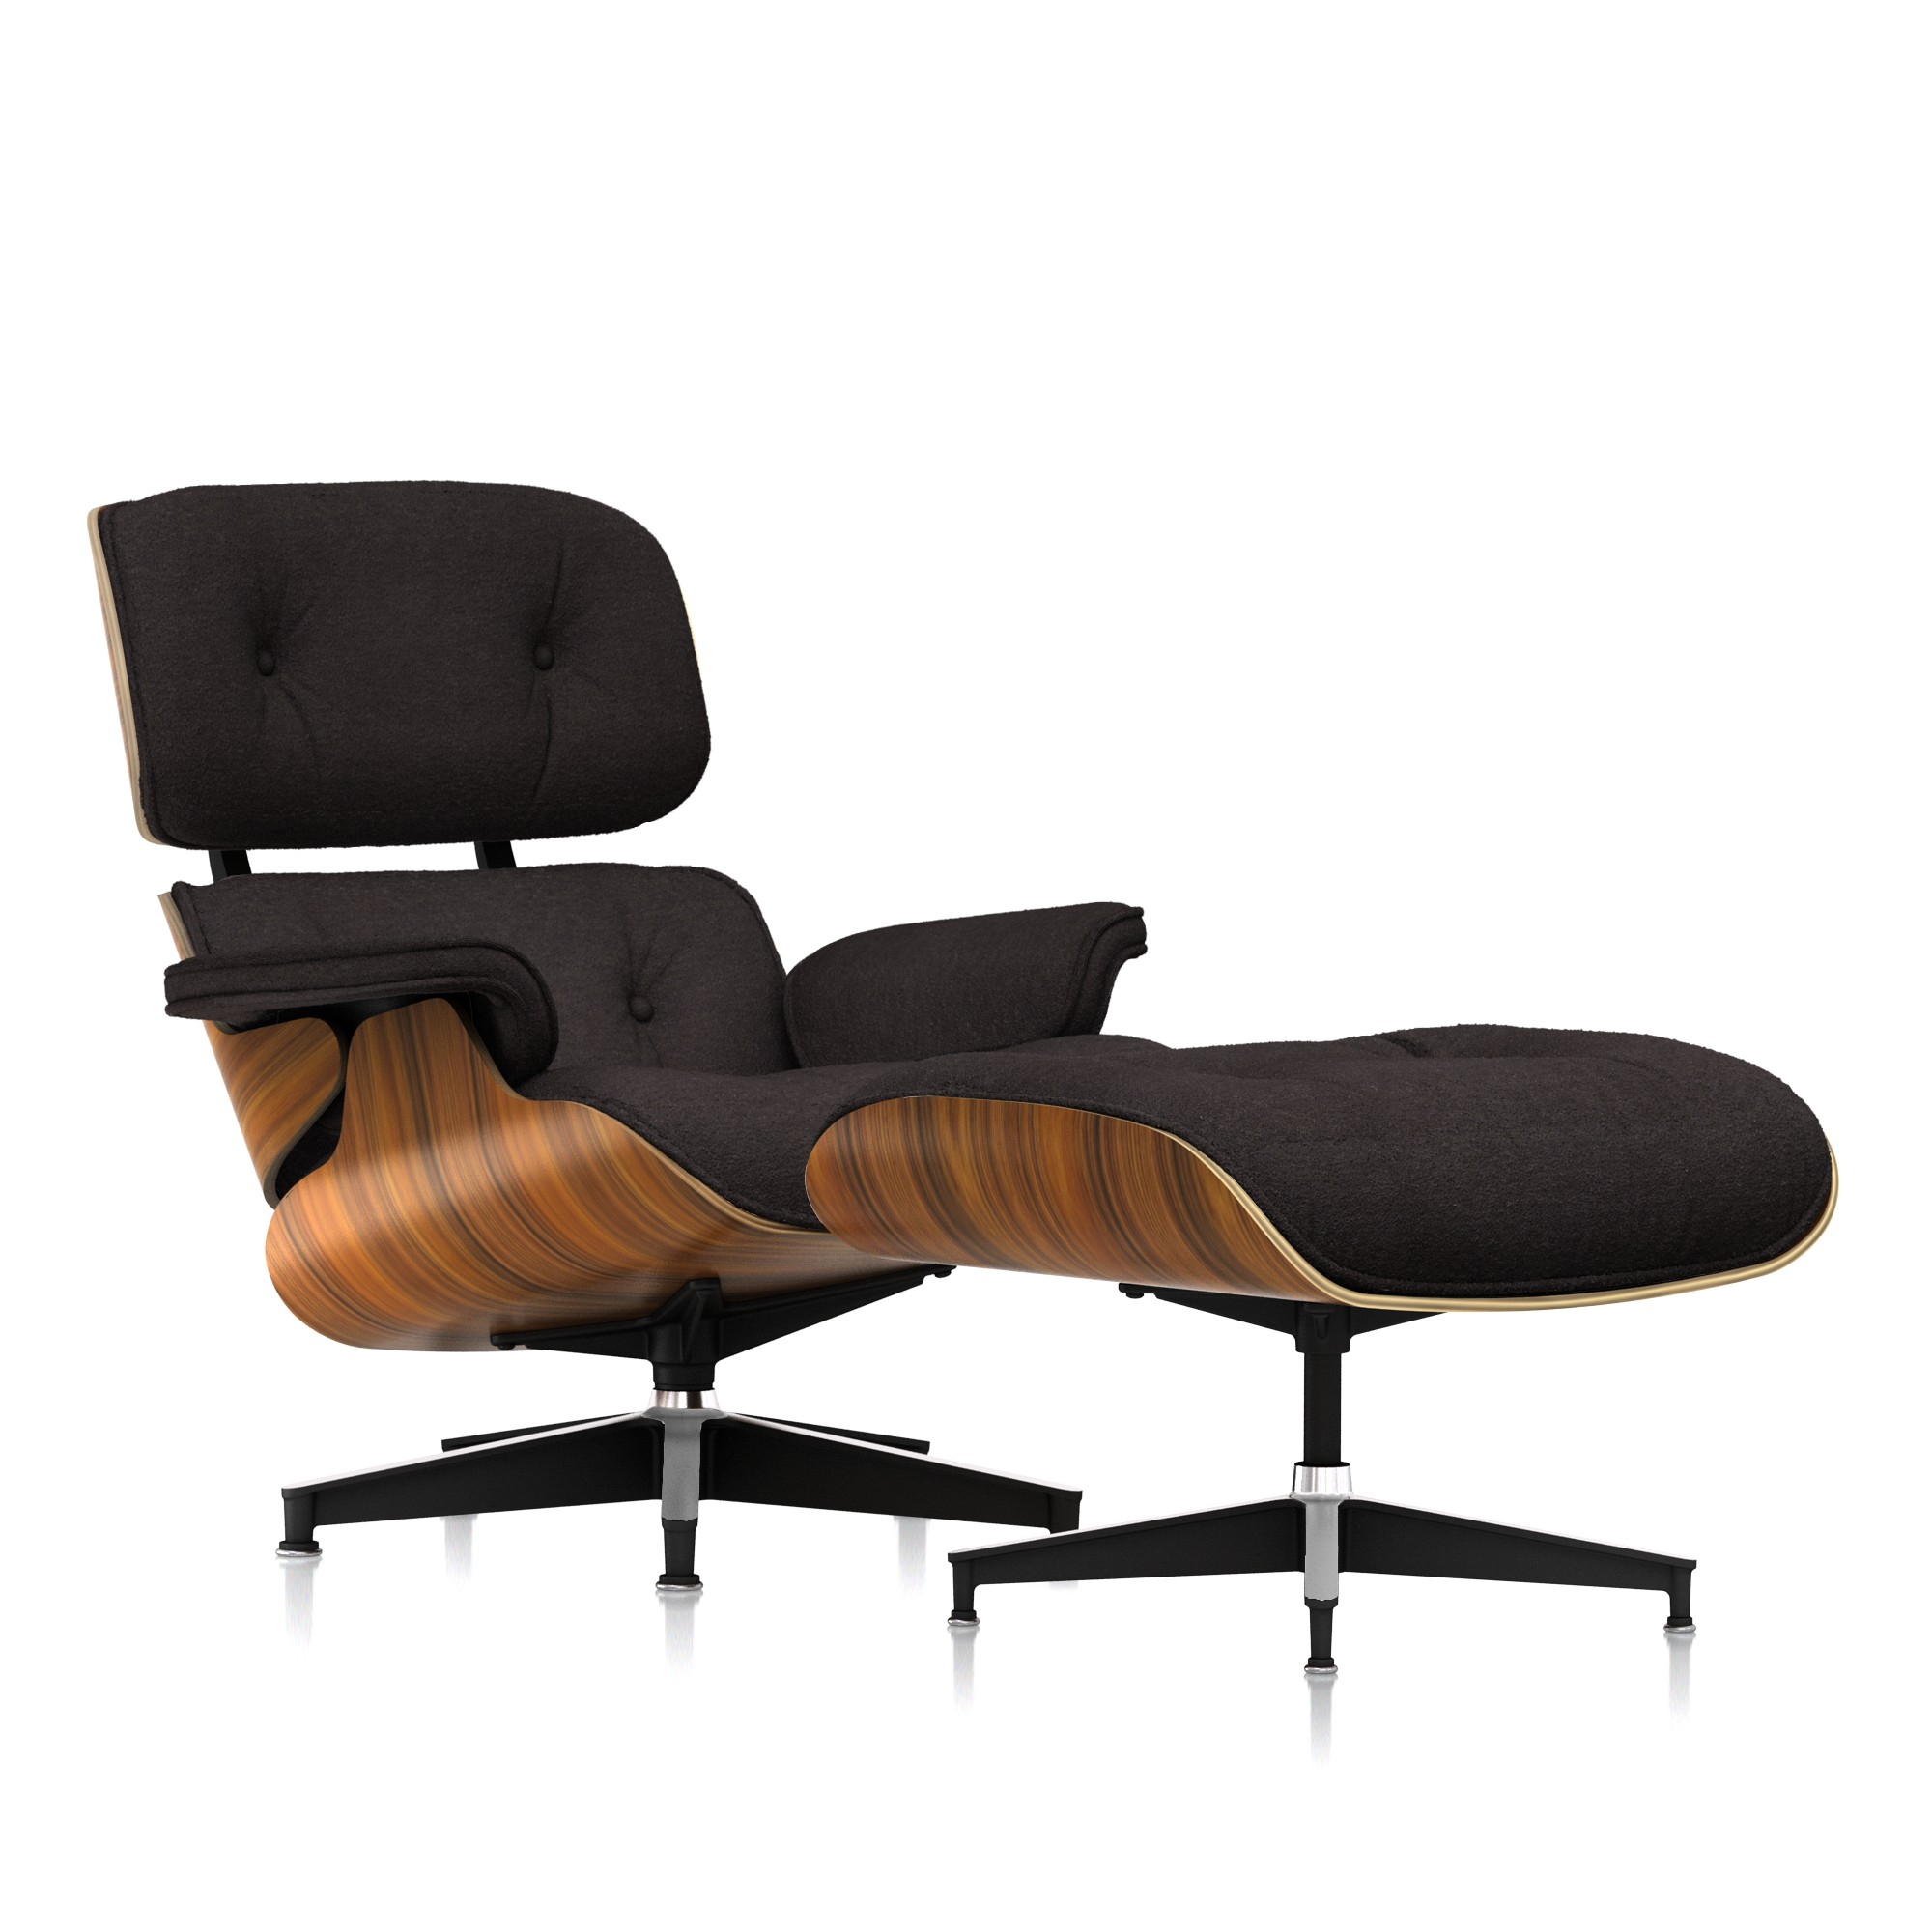 Eames Lounge Chair and Ottoman in Peat Mohair Supreme Classic by Herman Miller